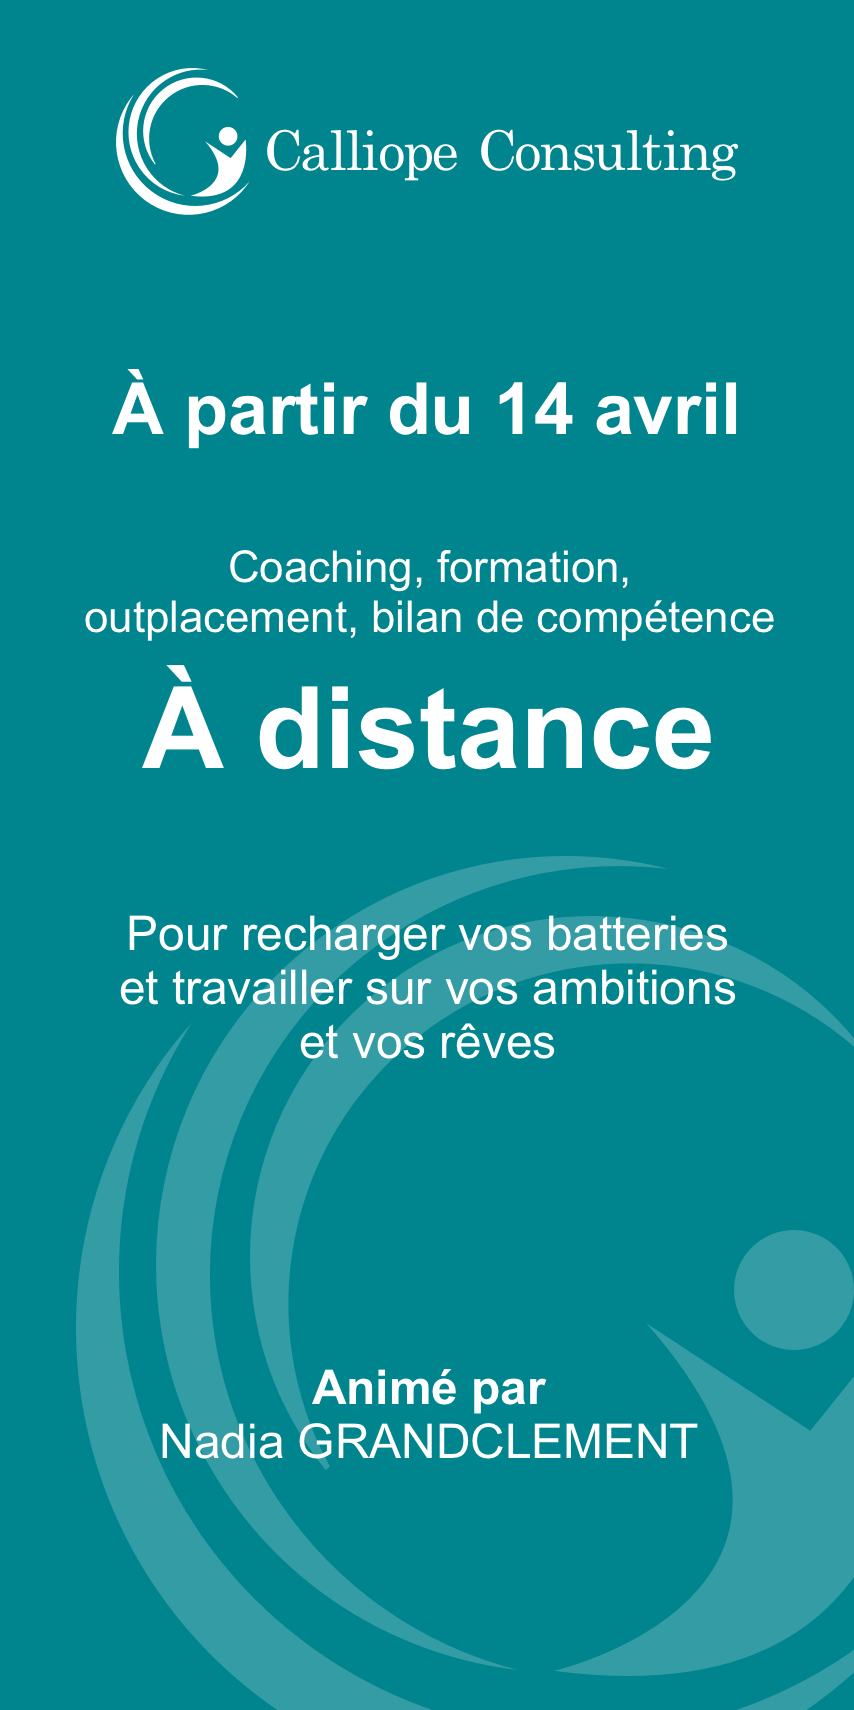 Formations et coaching à distance